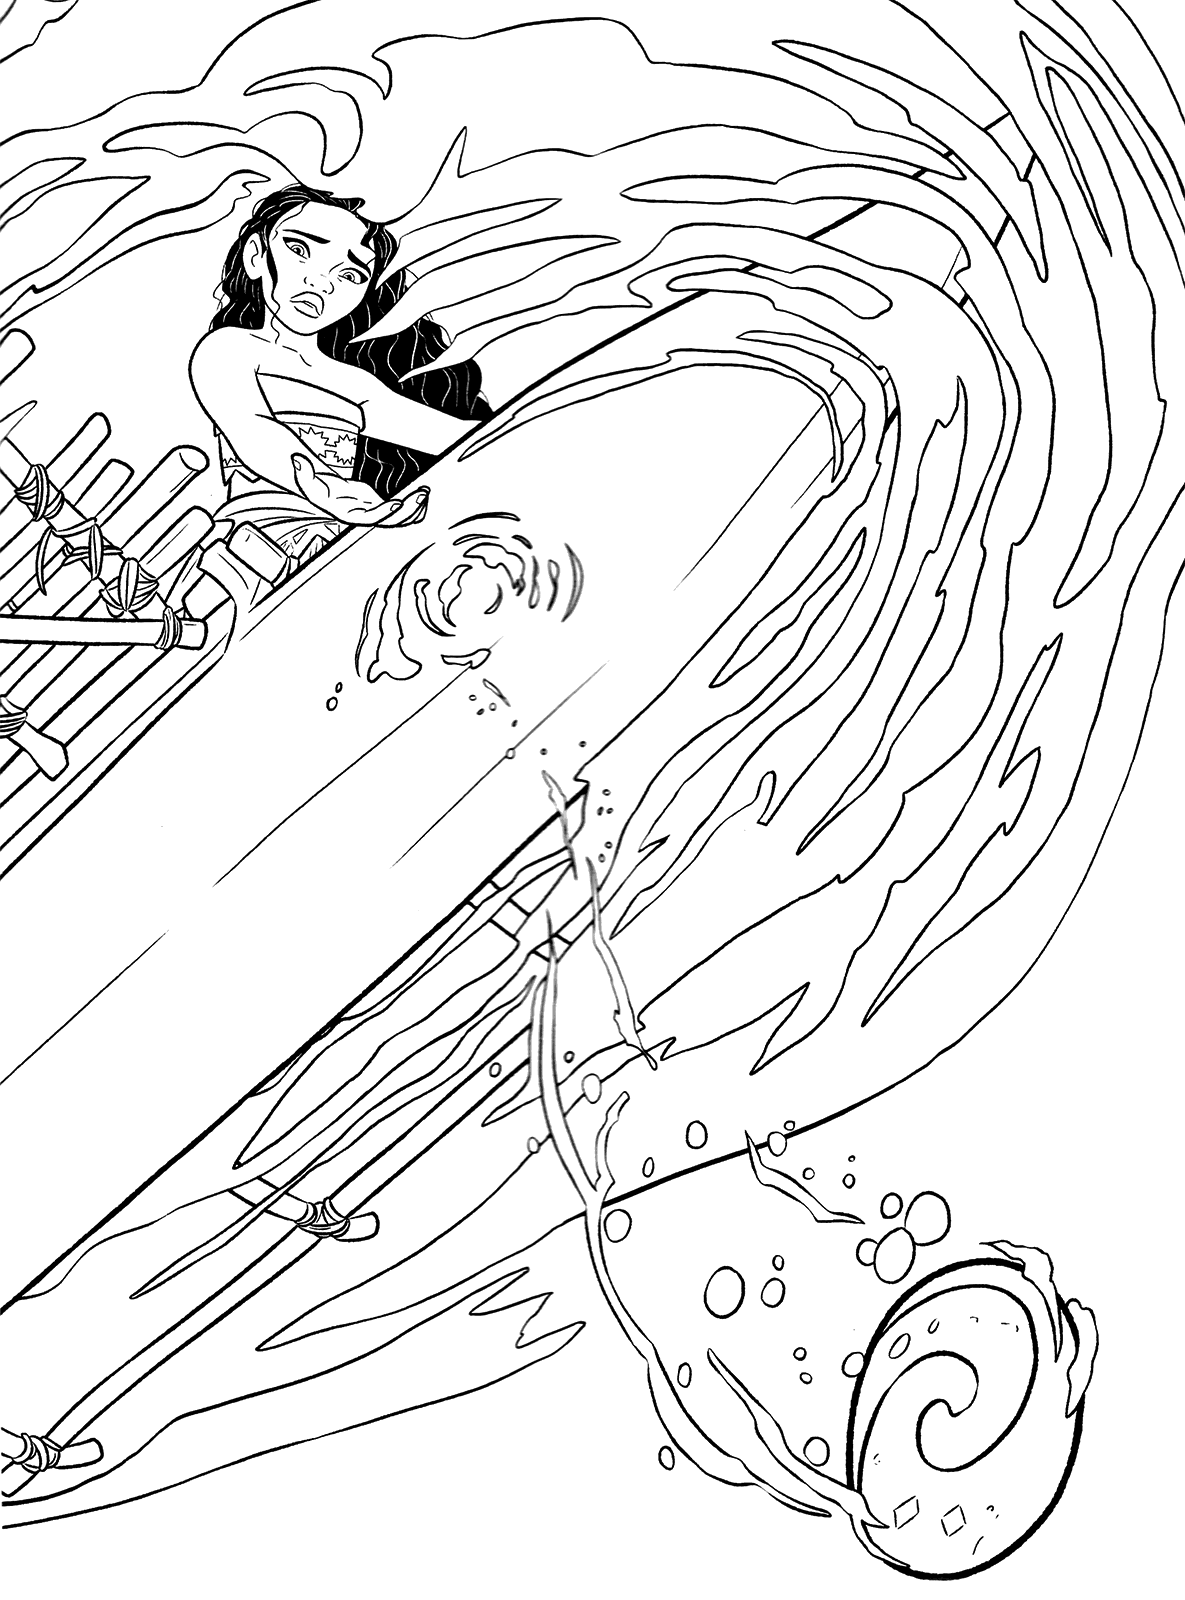 moana coloring pages printable free 35 printable moana coloring pages printable moana free pages coloring